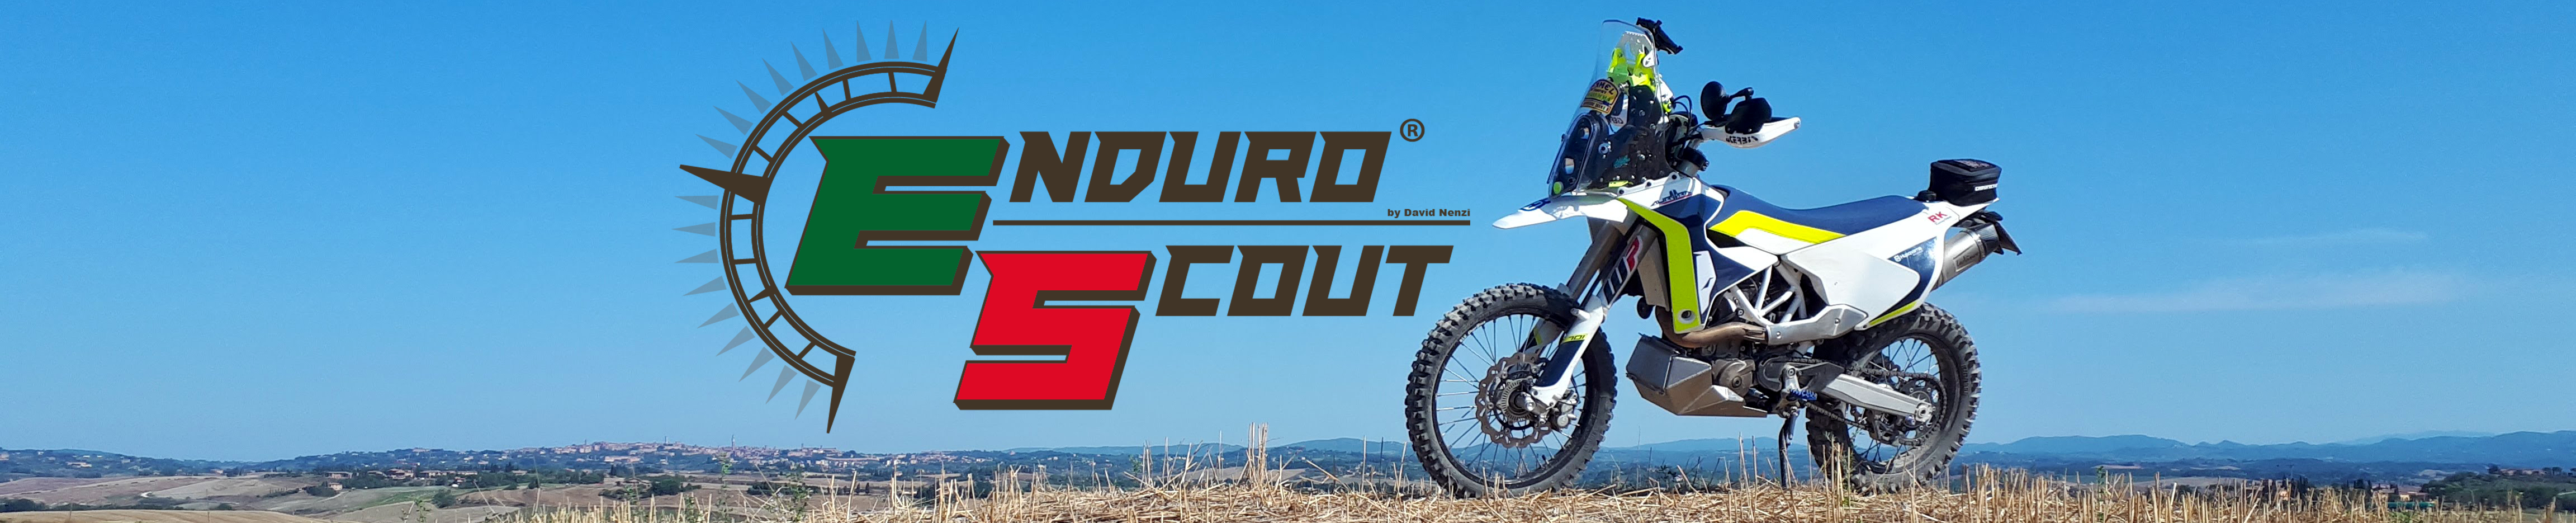 EnduroScout